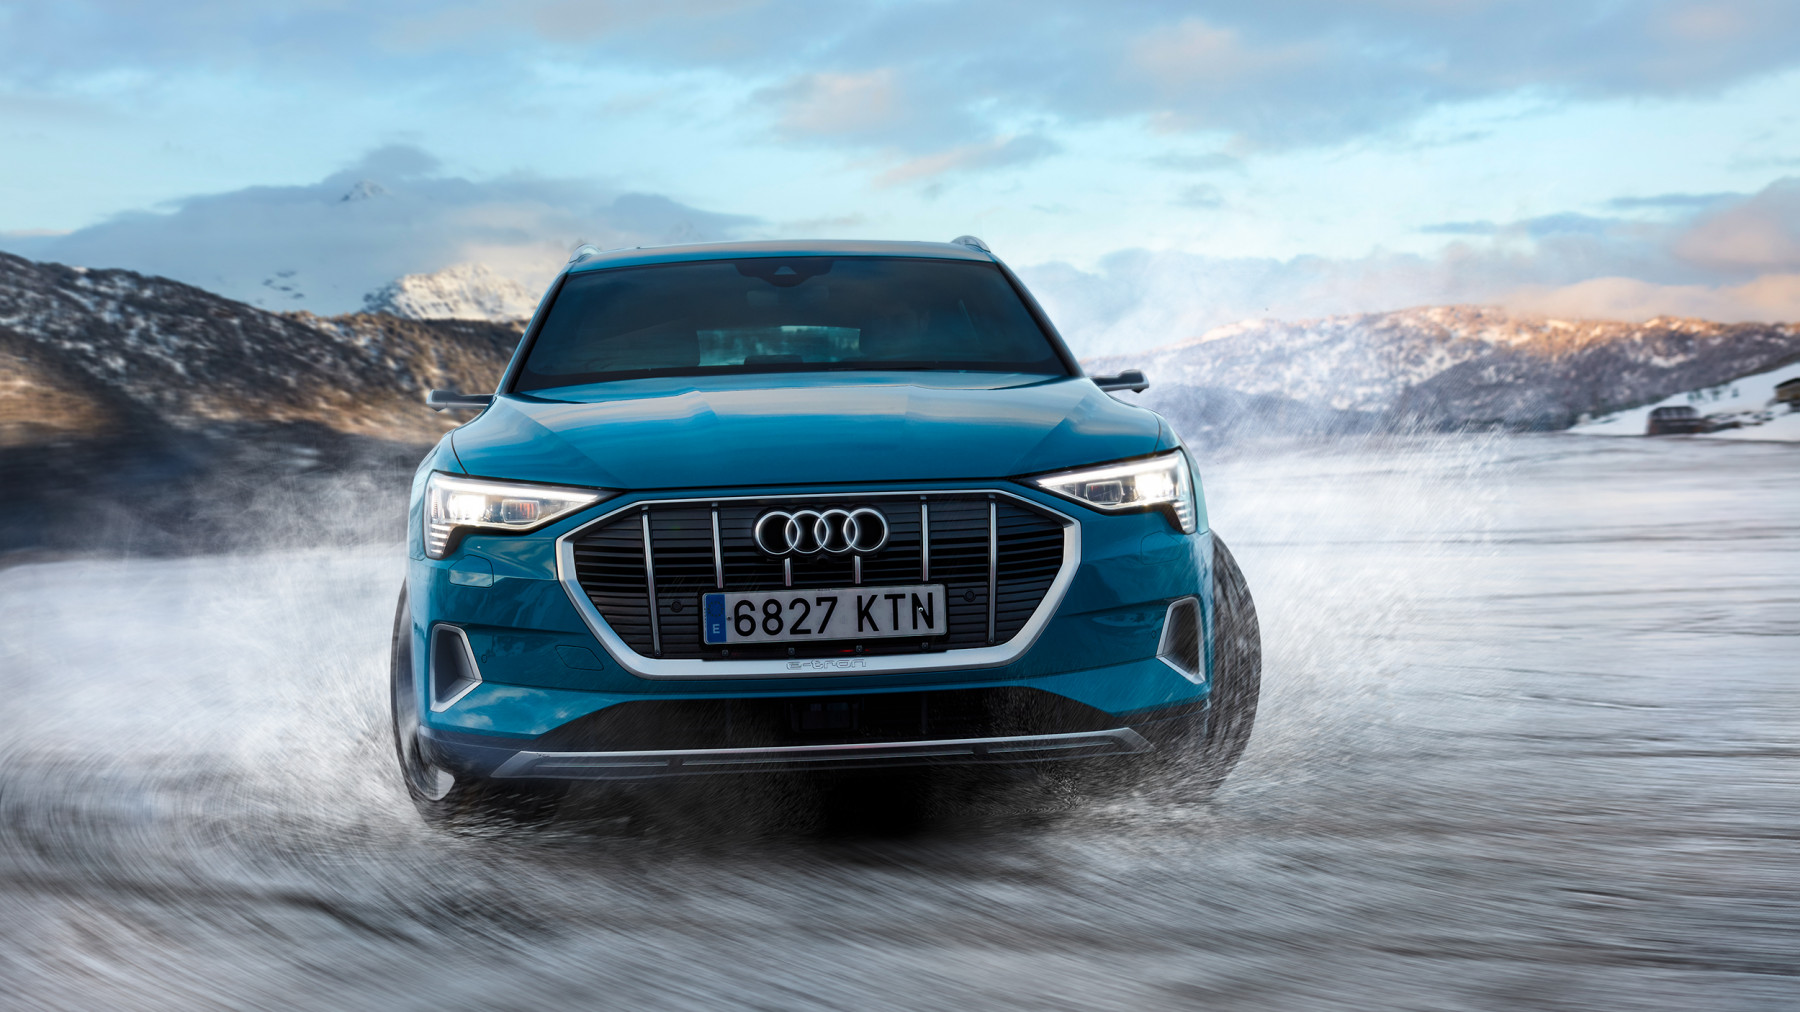 Audi E-Tron winter Barcelona to Baqueira Beret spread 4